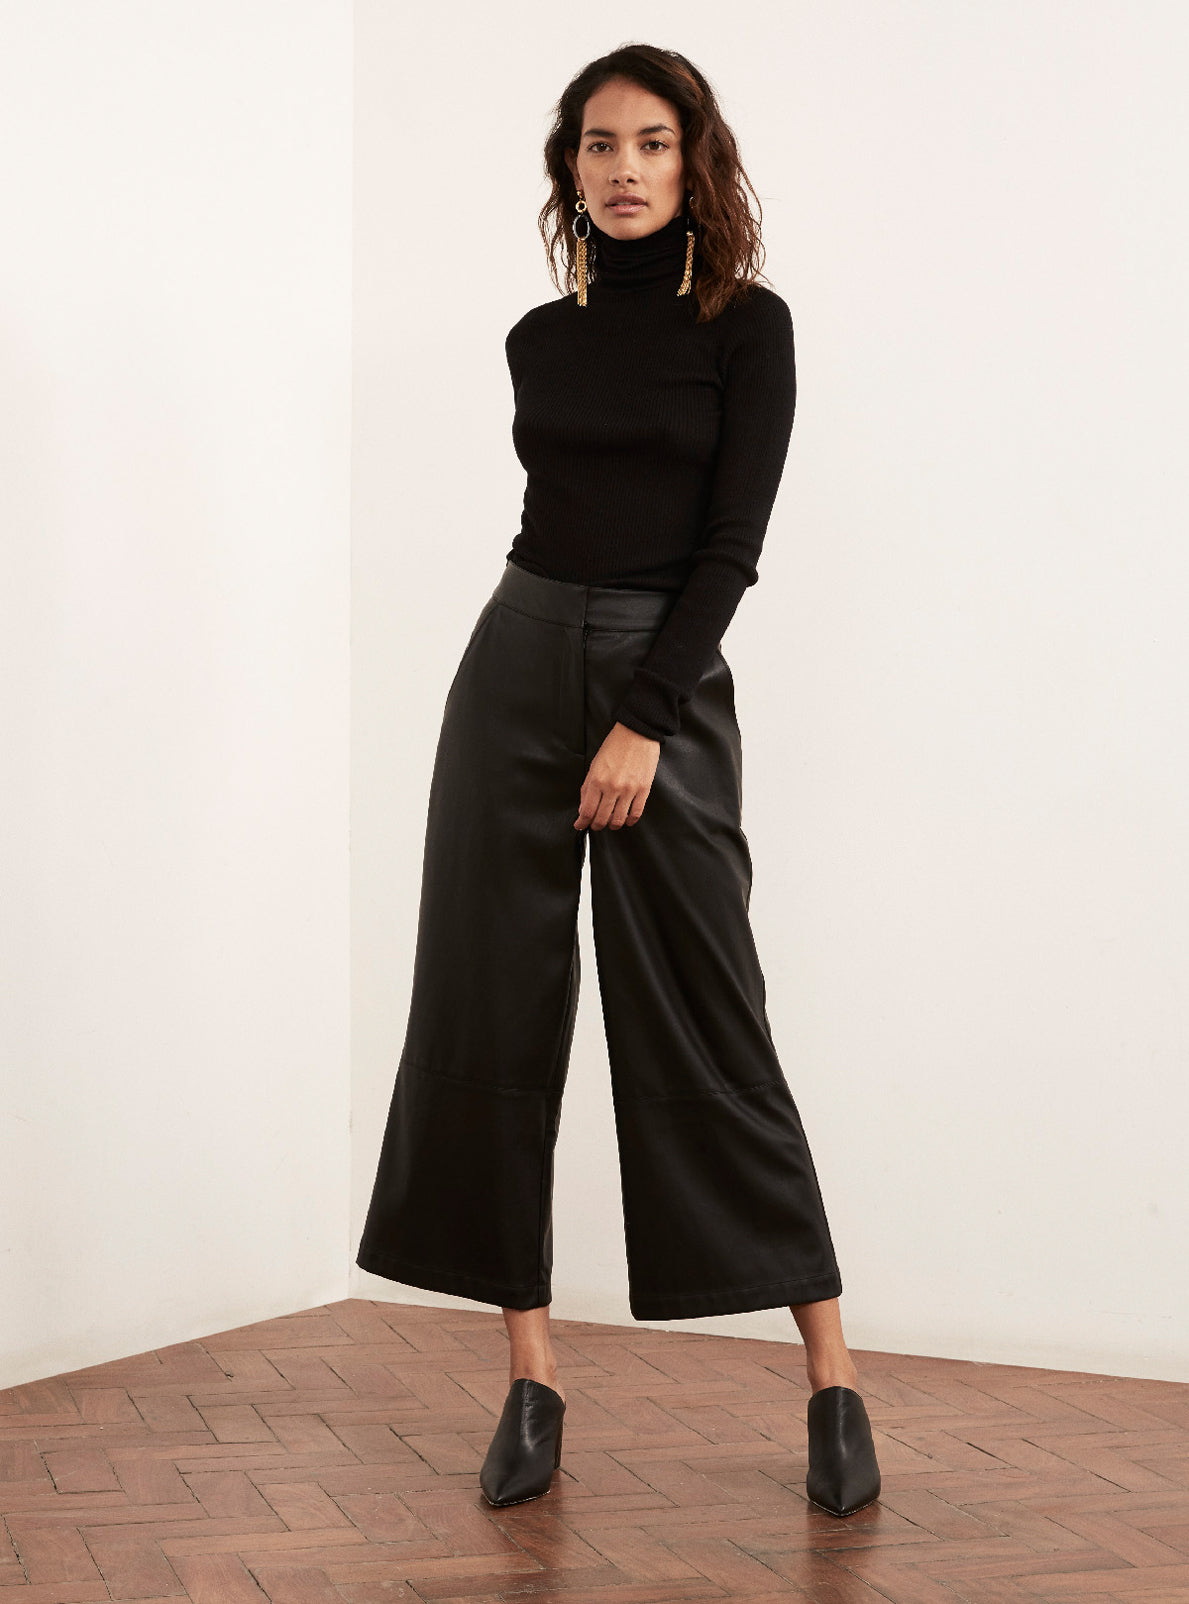 Remi Black Vegan Leather Trousers by KITRI Studio